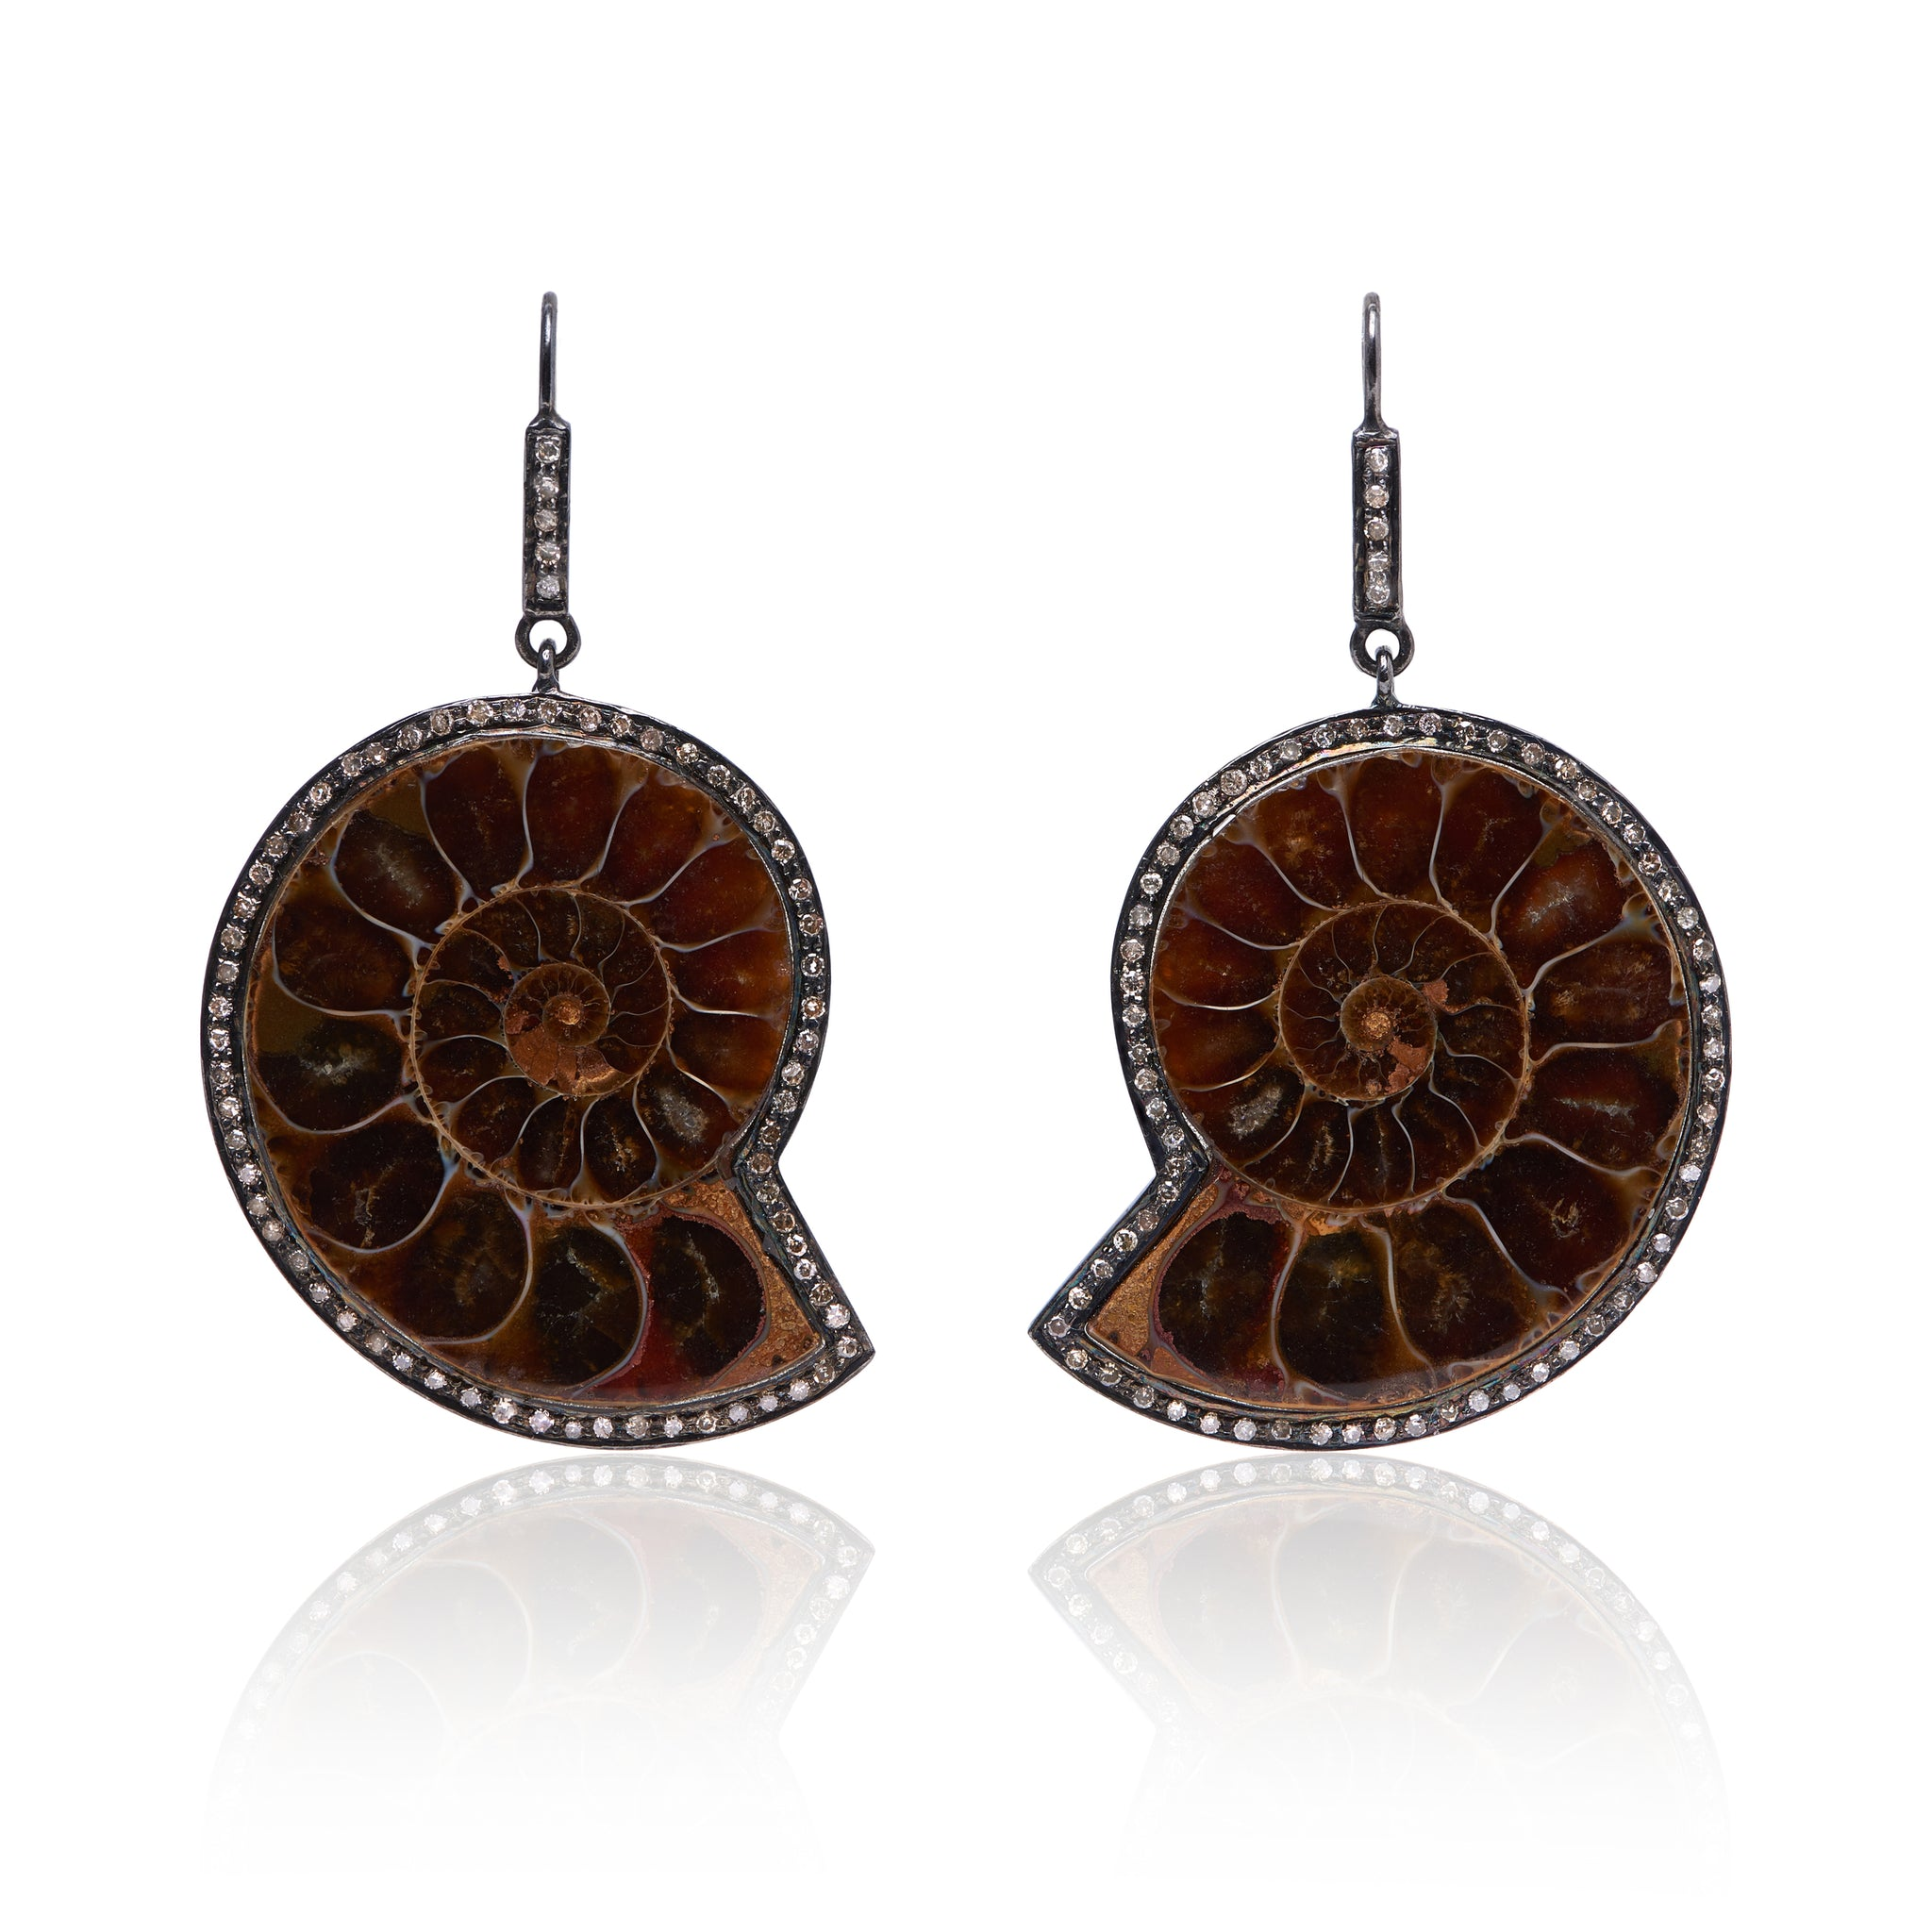 Ammonite Fossil Earrings with Diamonds made in sterling silver